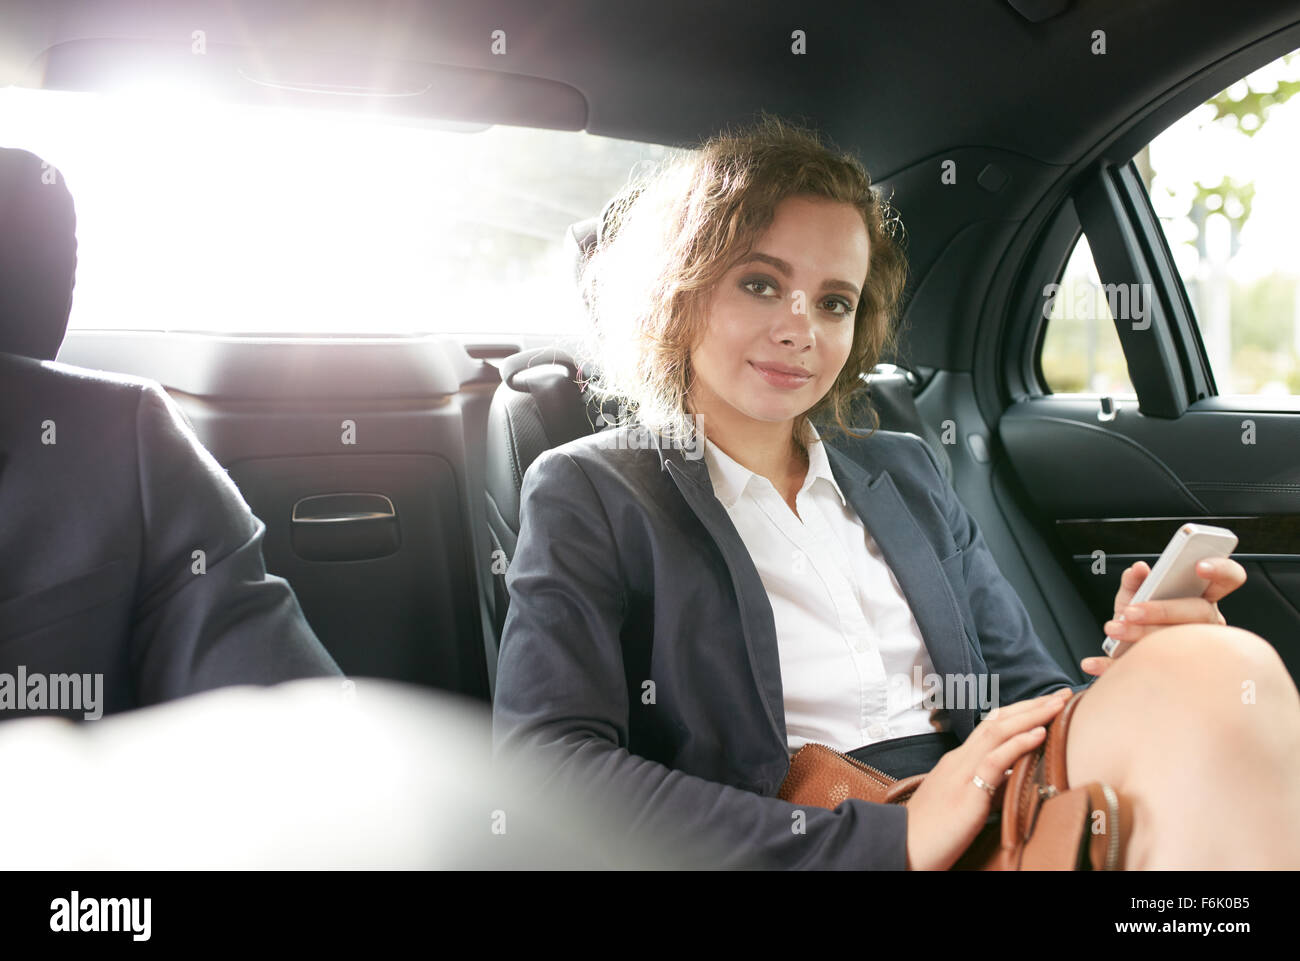 Portrait of confident businesswoman in back seat of car with her cell phone in hand looking at camera. - Stock Image